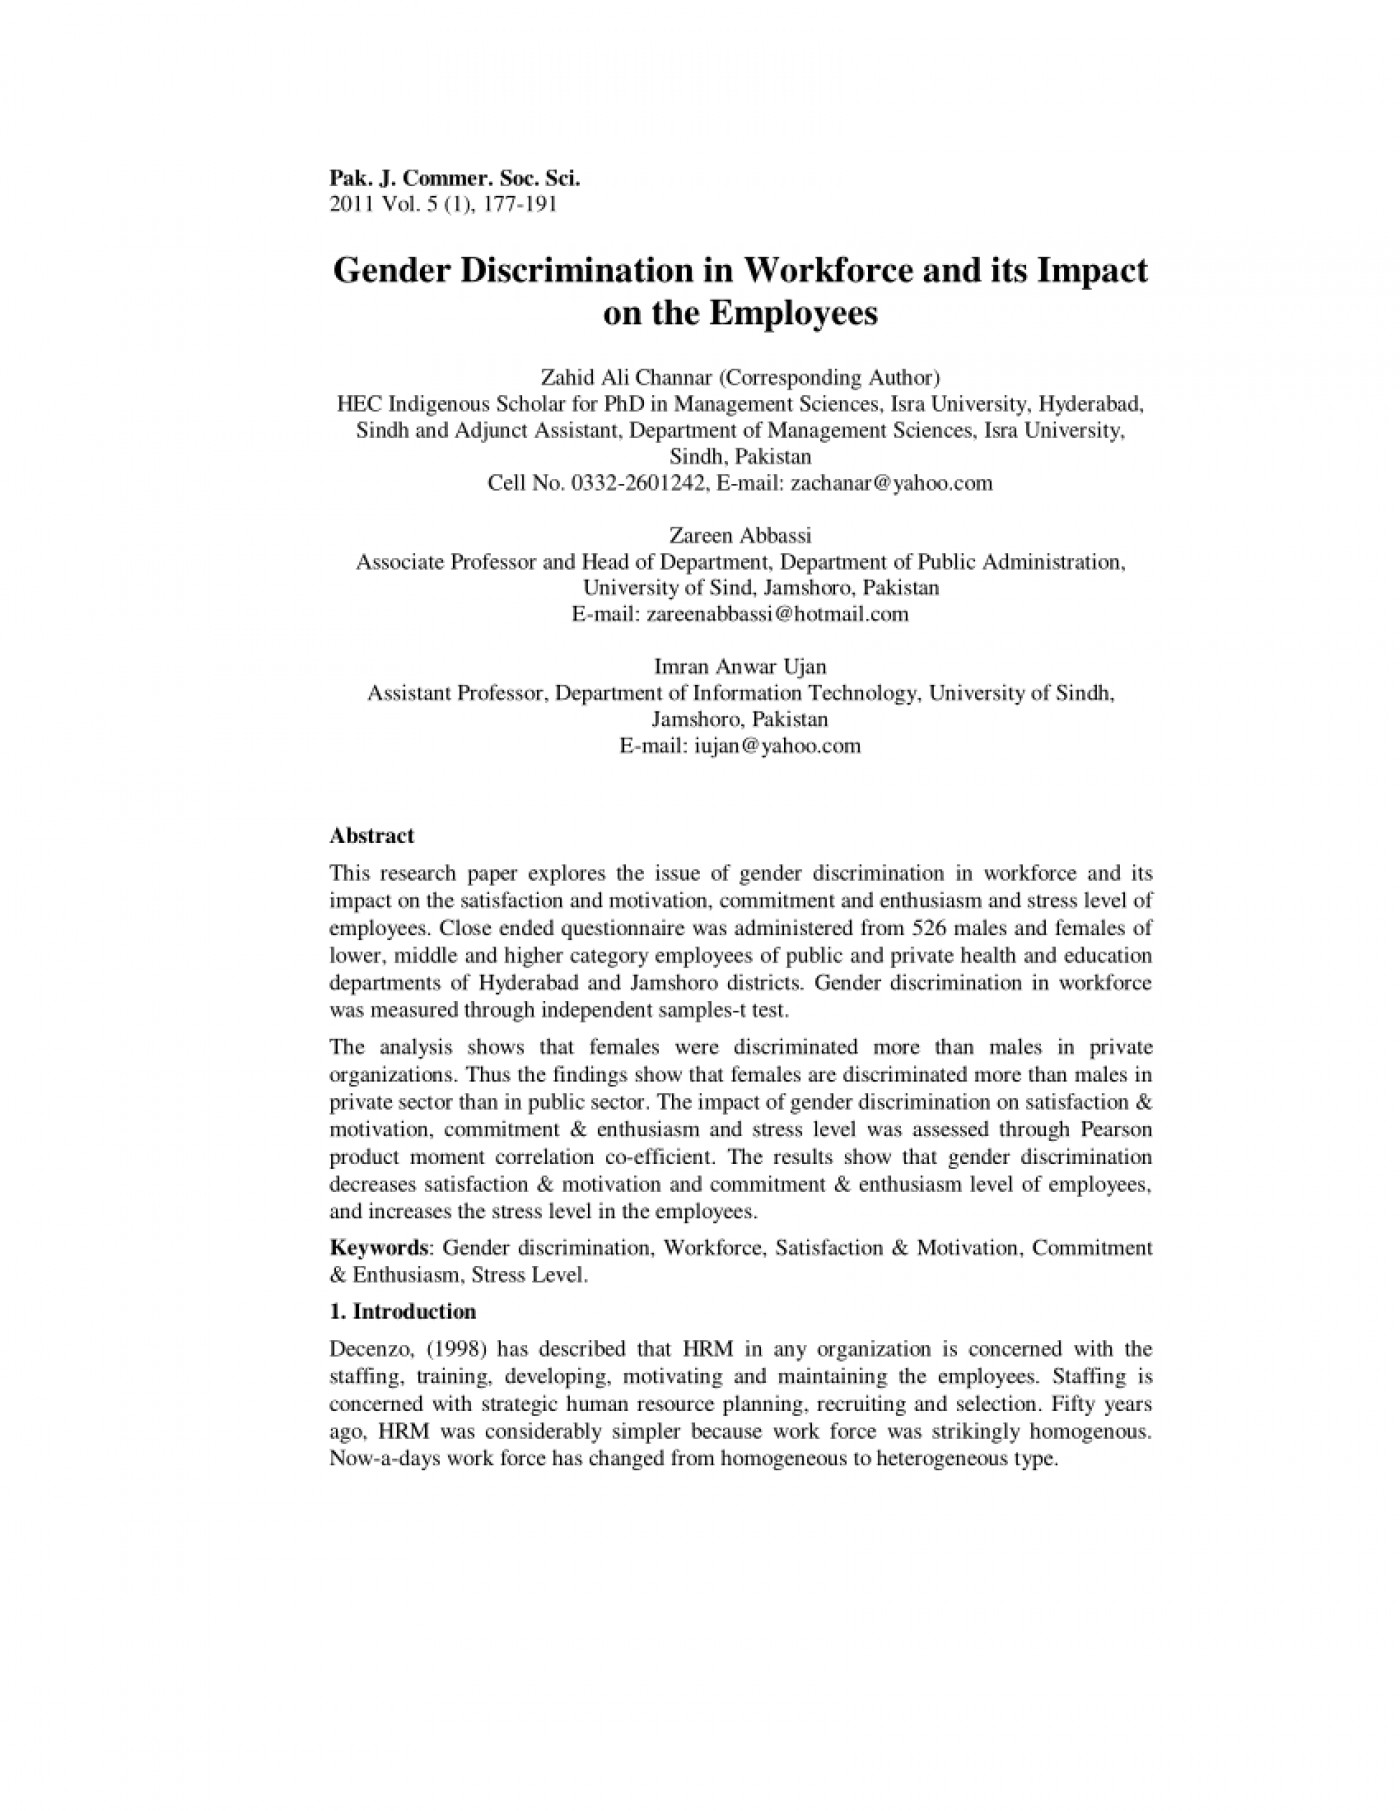 001 Research Paper Discrimination In Education Pdf Amazing 1400